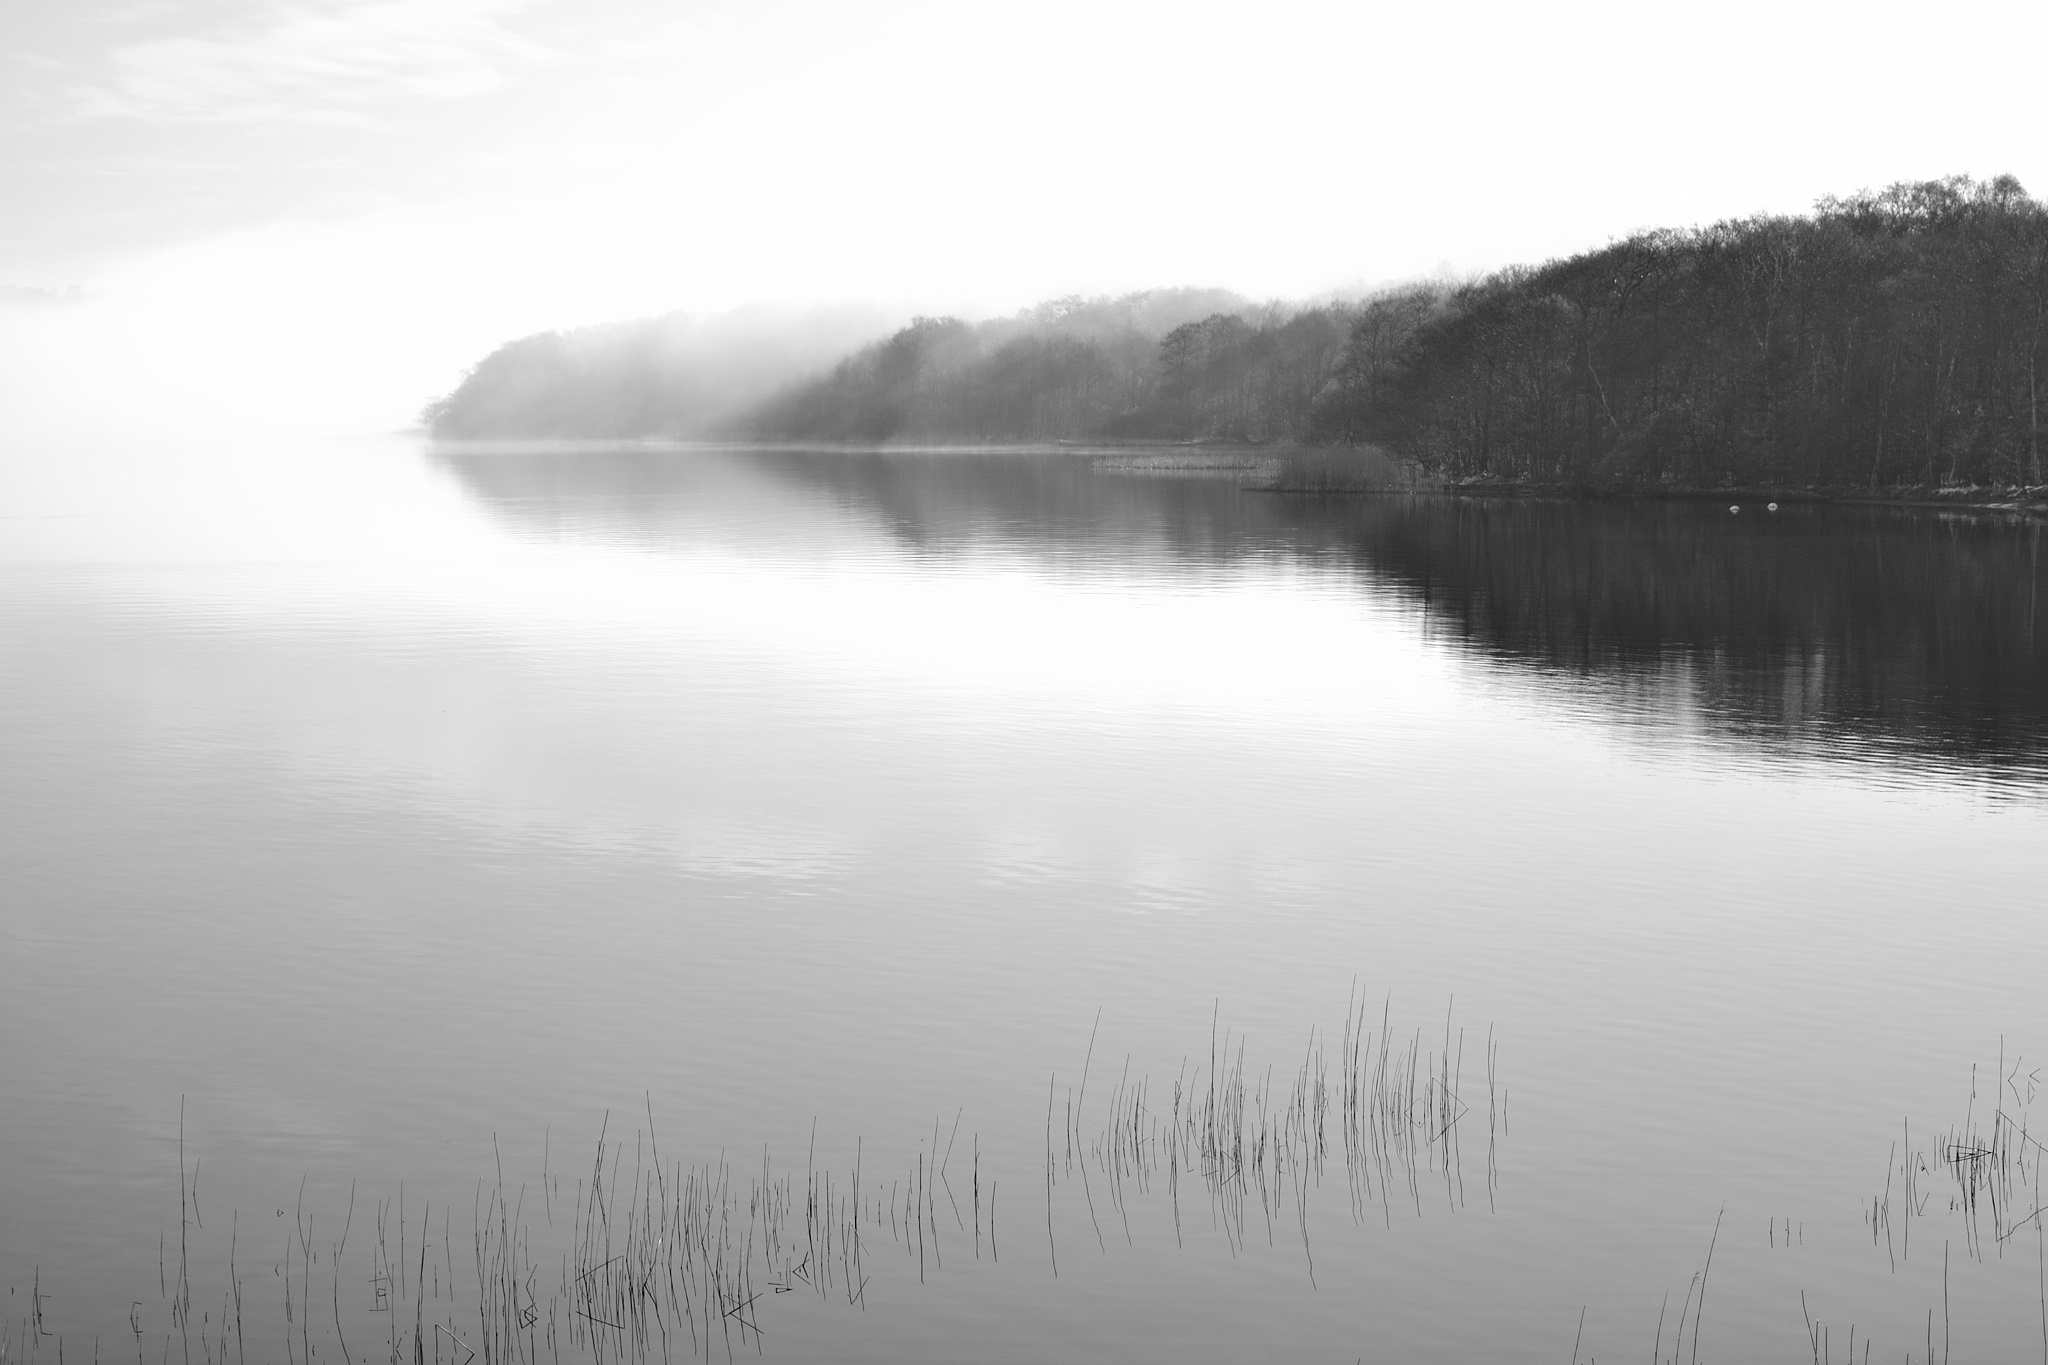 morning at the lake B&W by Poul-Erik Riis